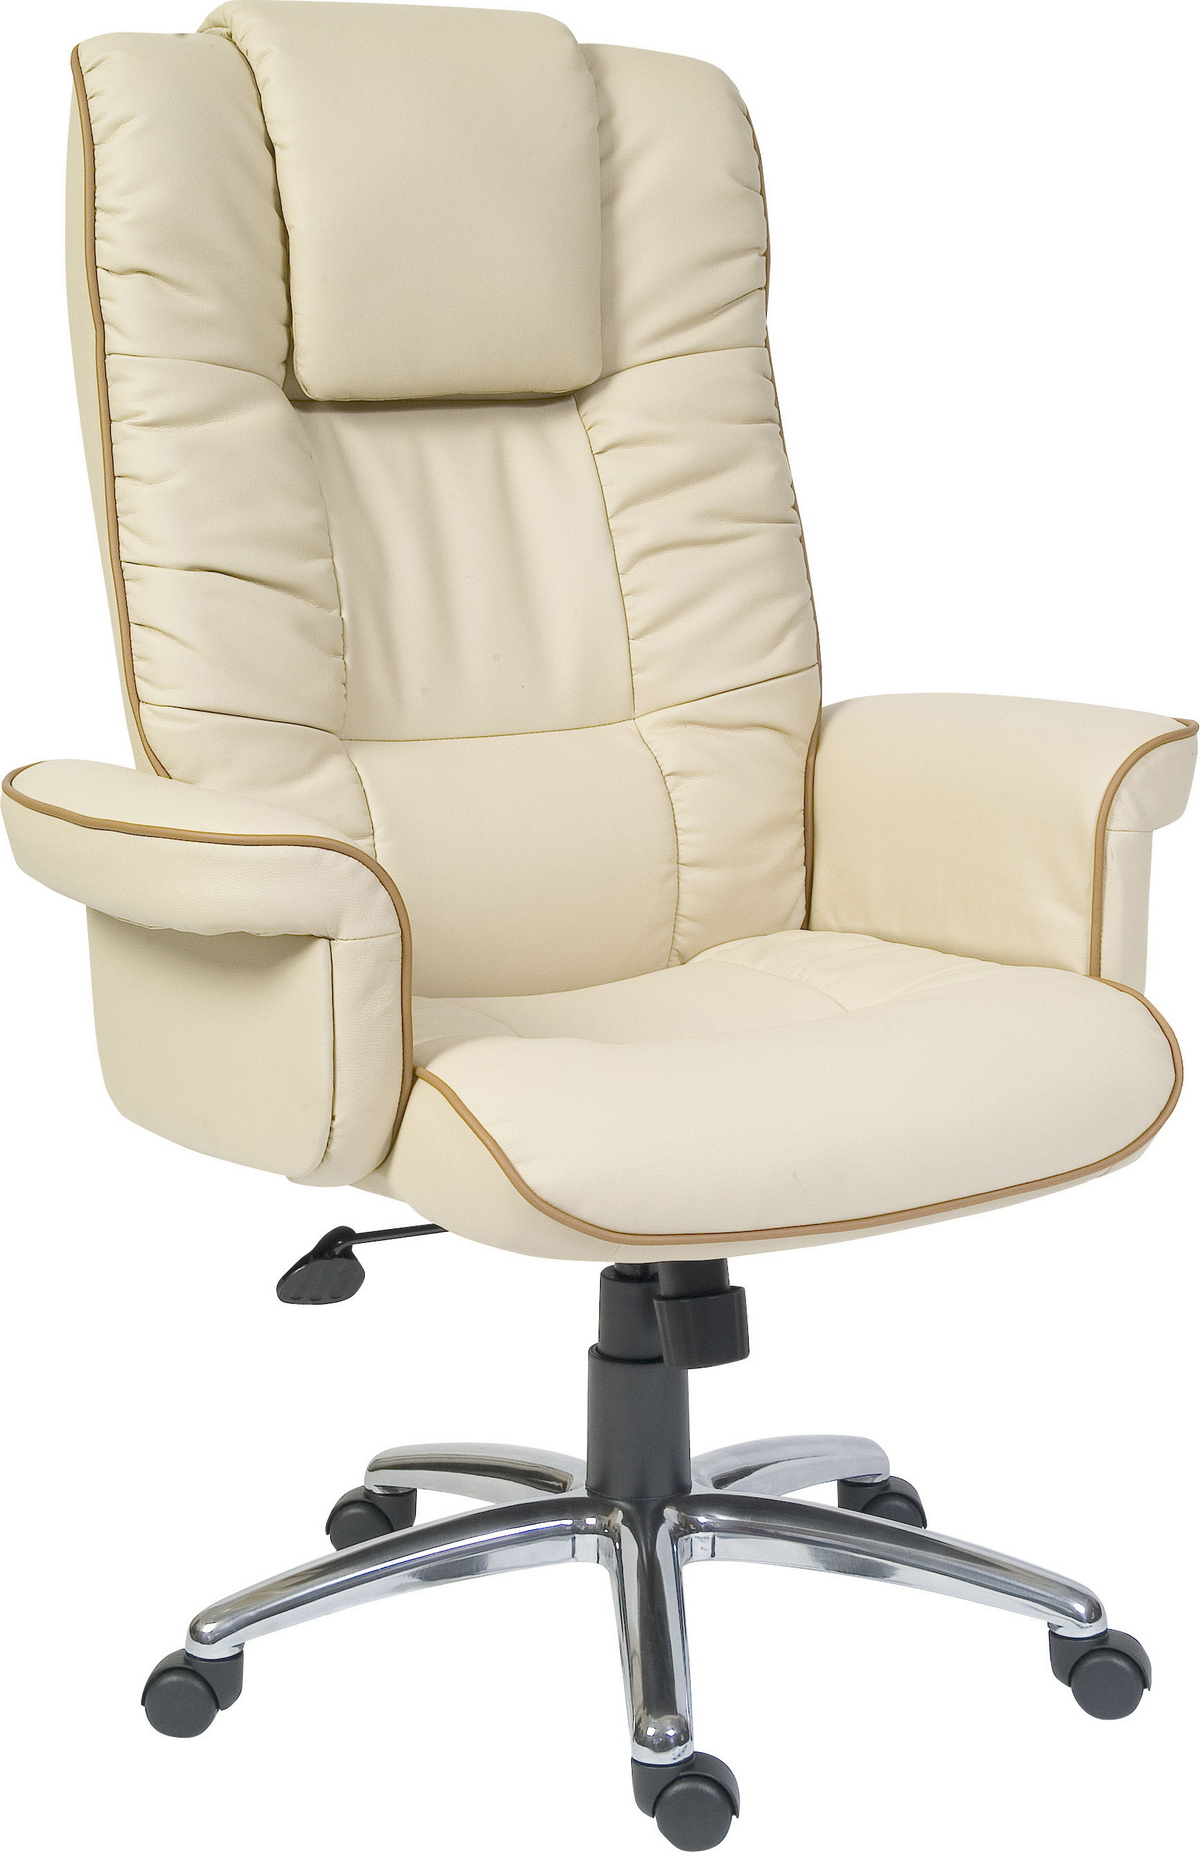 Comfo Cream Leather Bonded Office Chair With Arms